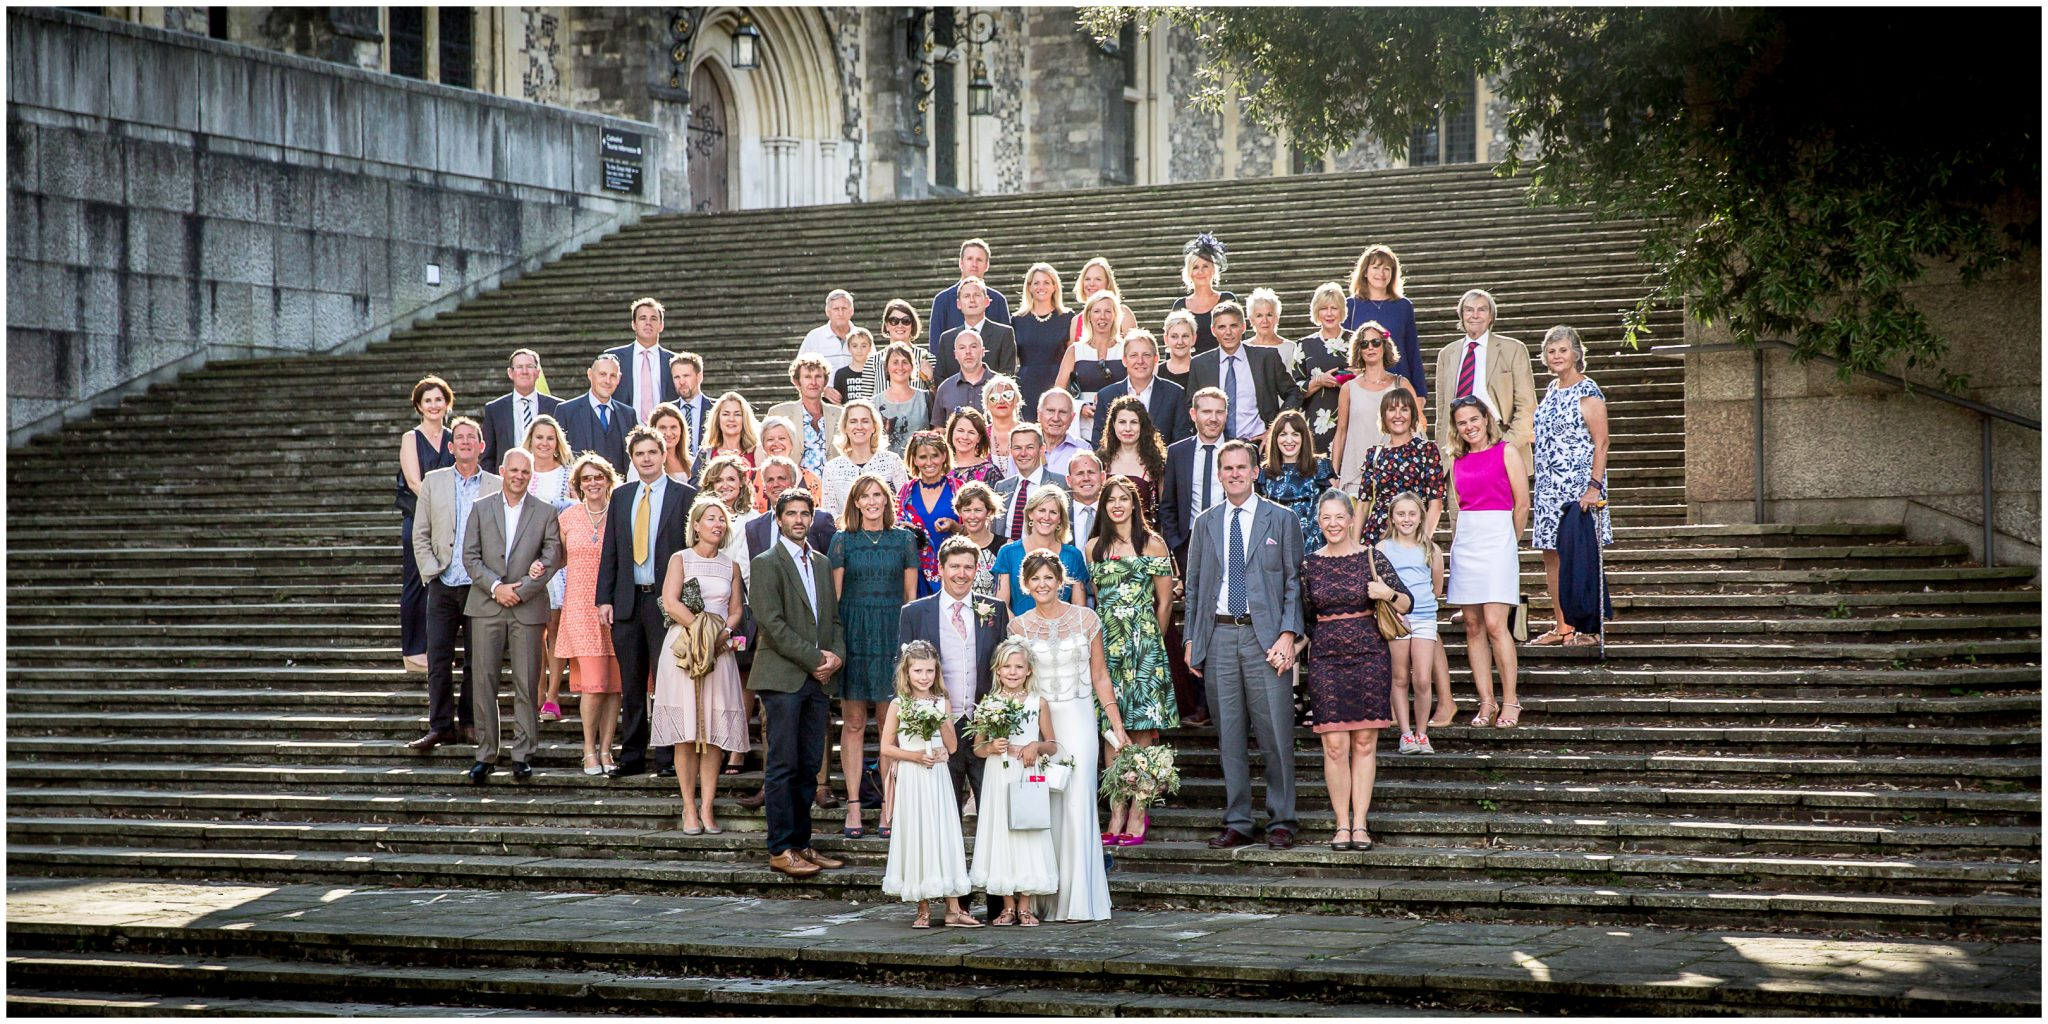 Group photo of all wedding guests stood on the steps outside Winchester Law Courts